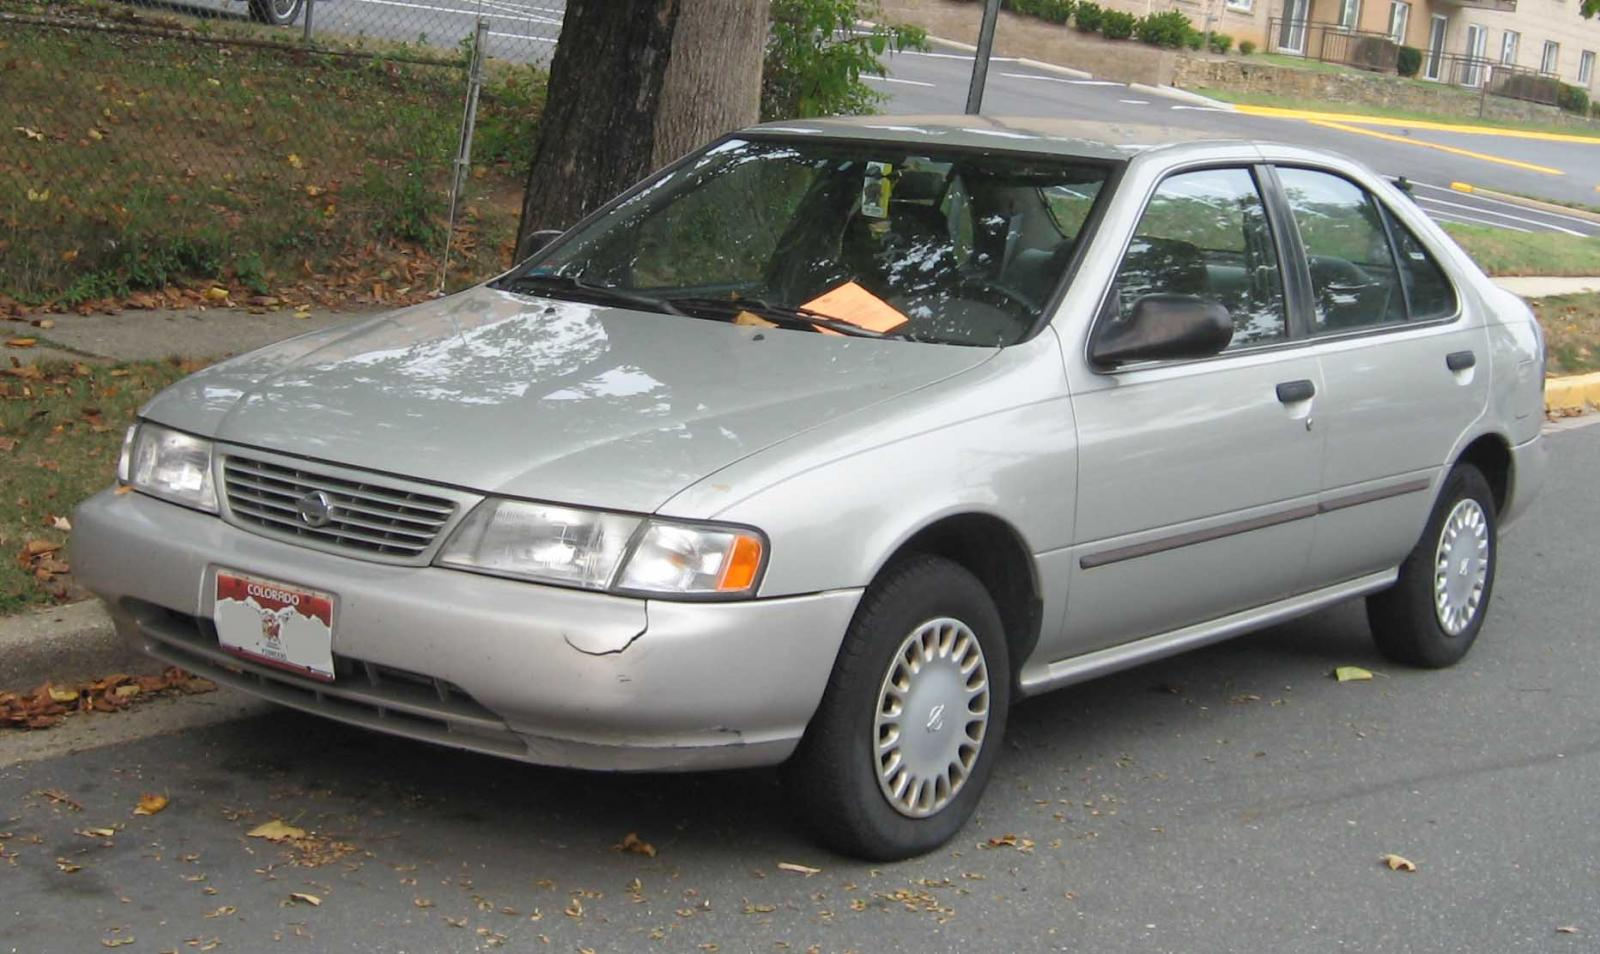 1997 Nissan Sentra Information And Photos Zombiedrive 1994 Maxima Automatic Transmission Wiring Diagram Gallery